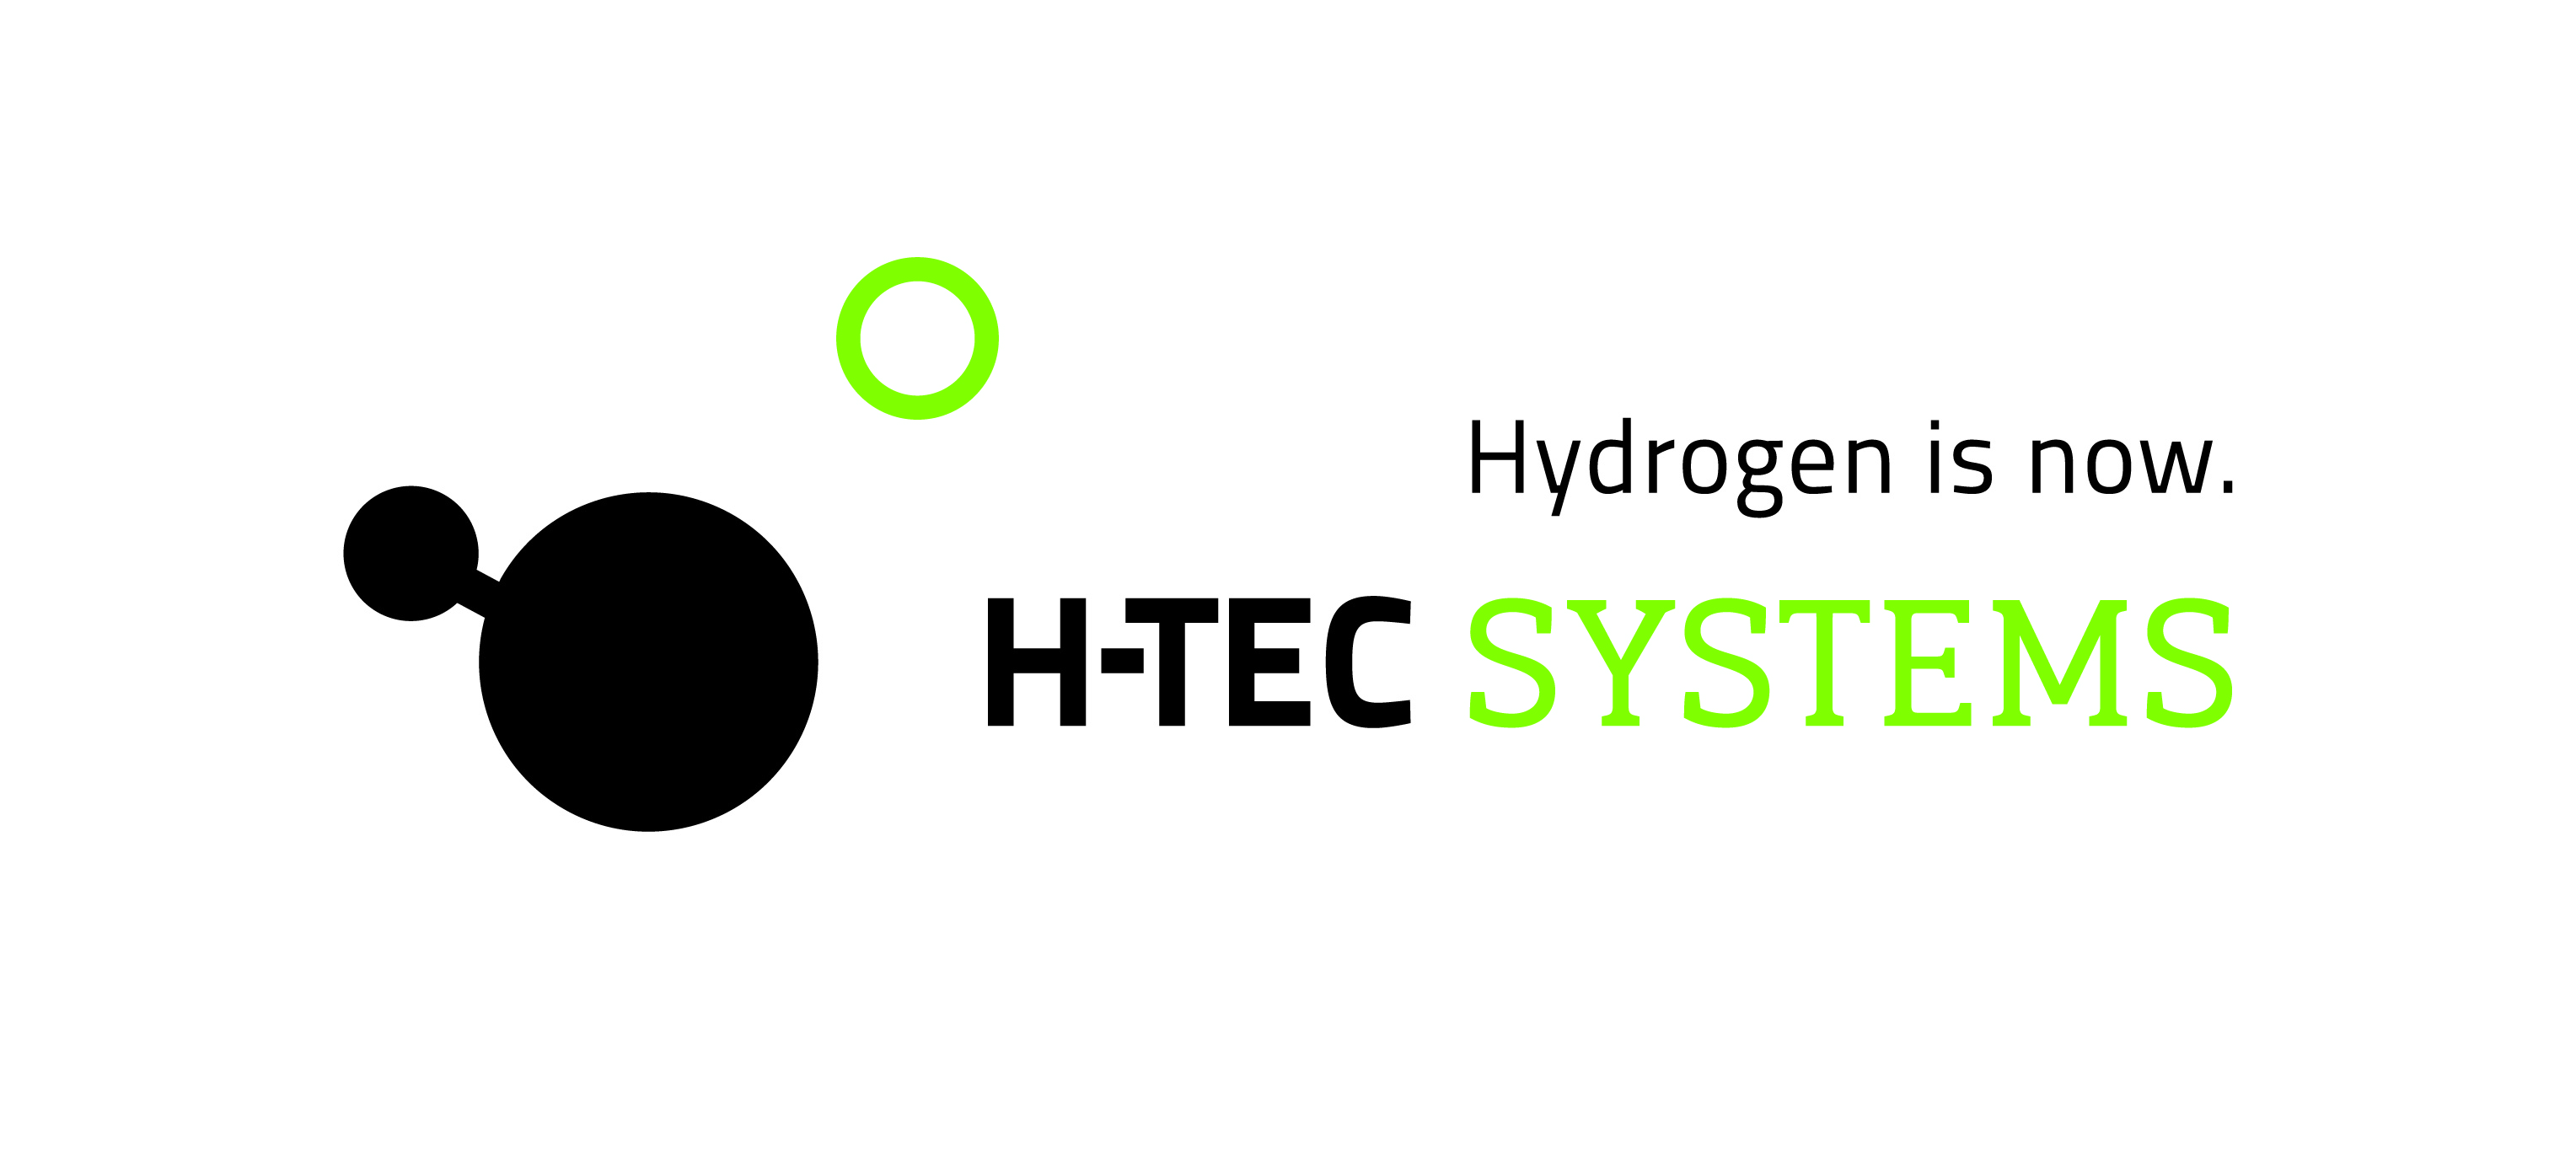 H-TEC SYSTEMS